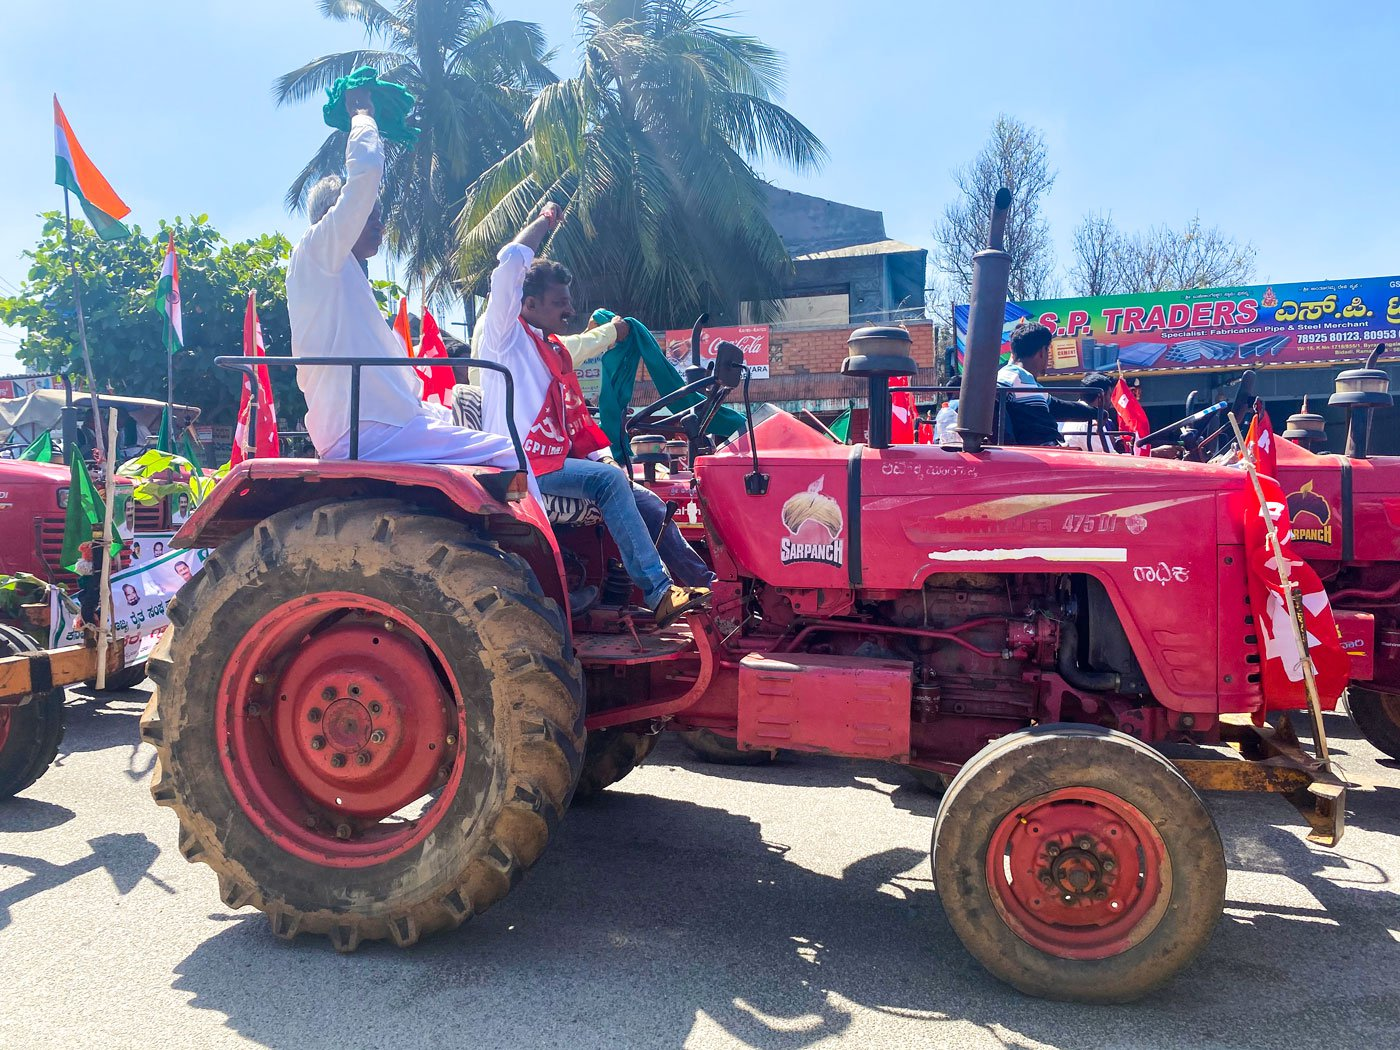 The new farms laws impact farmers all over India, say farmers from across Karnataka. Many of them joined the tractor parade in Bengaluru on Republic Day to support the farmers protesting in Delhi against the laws